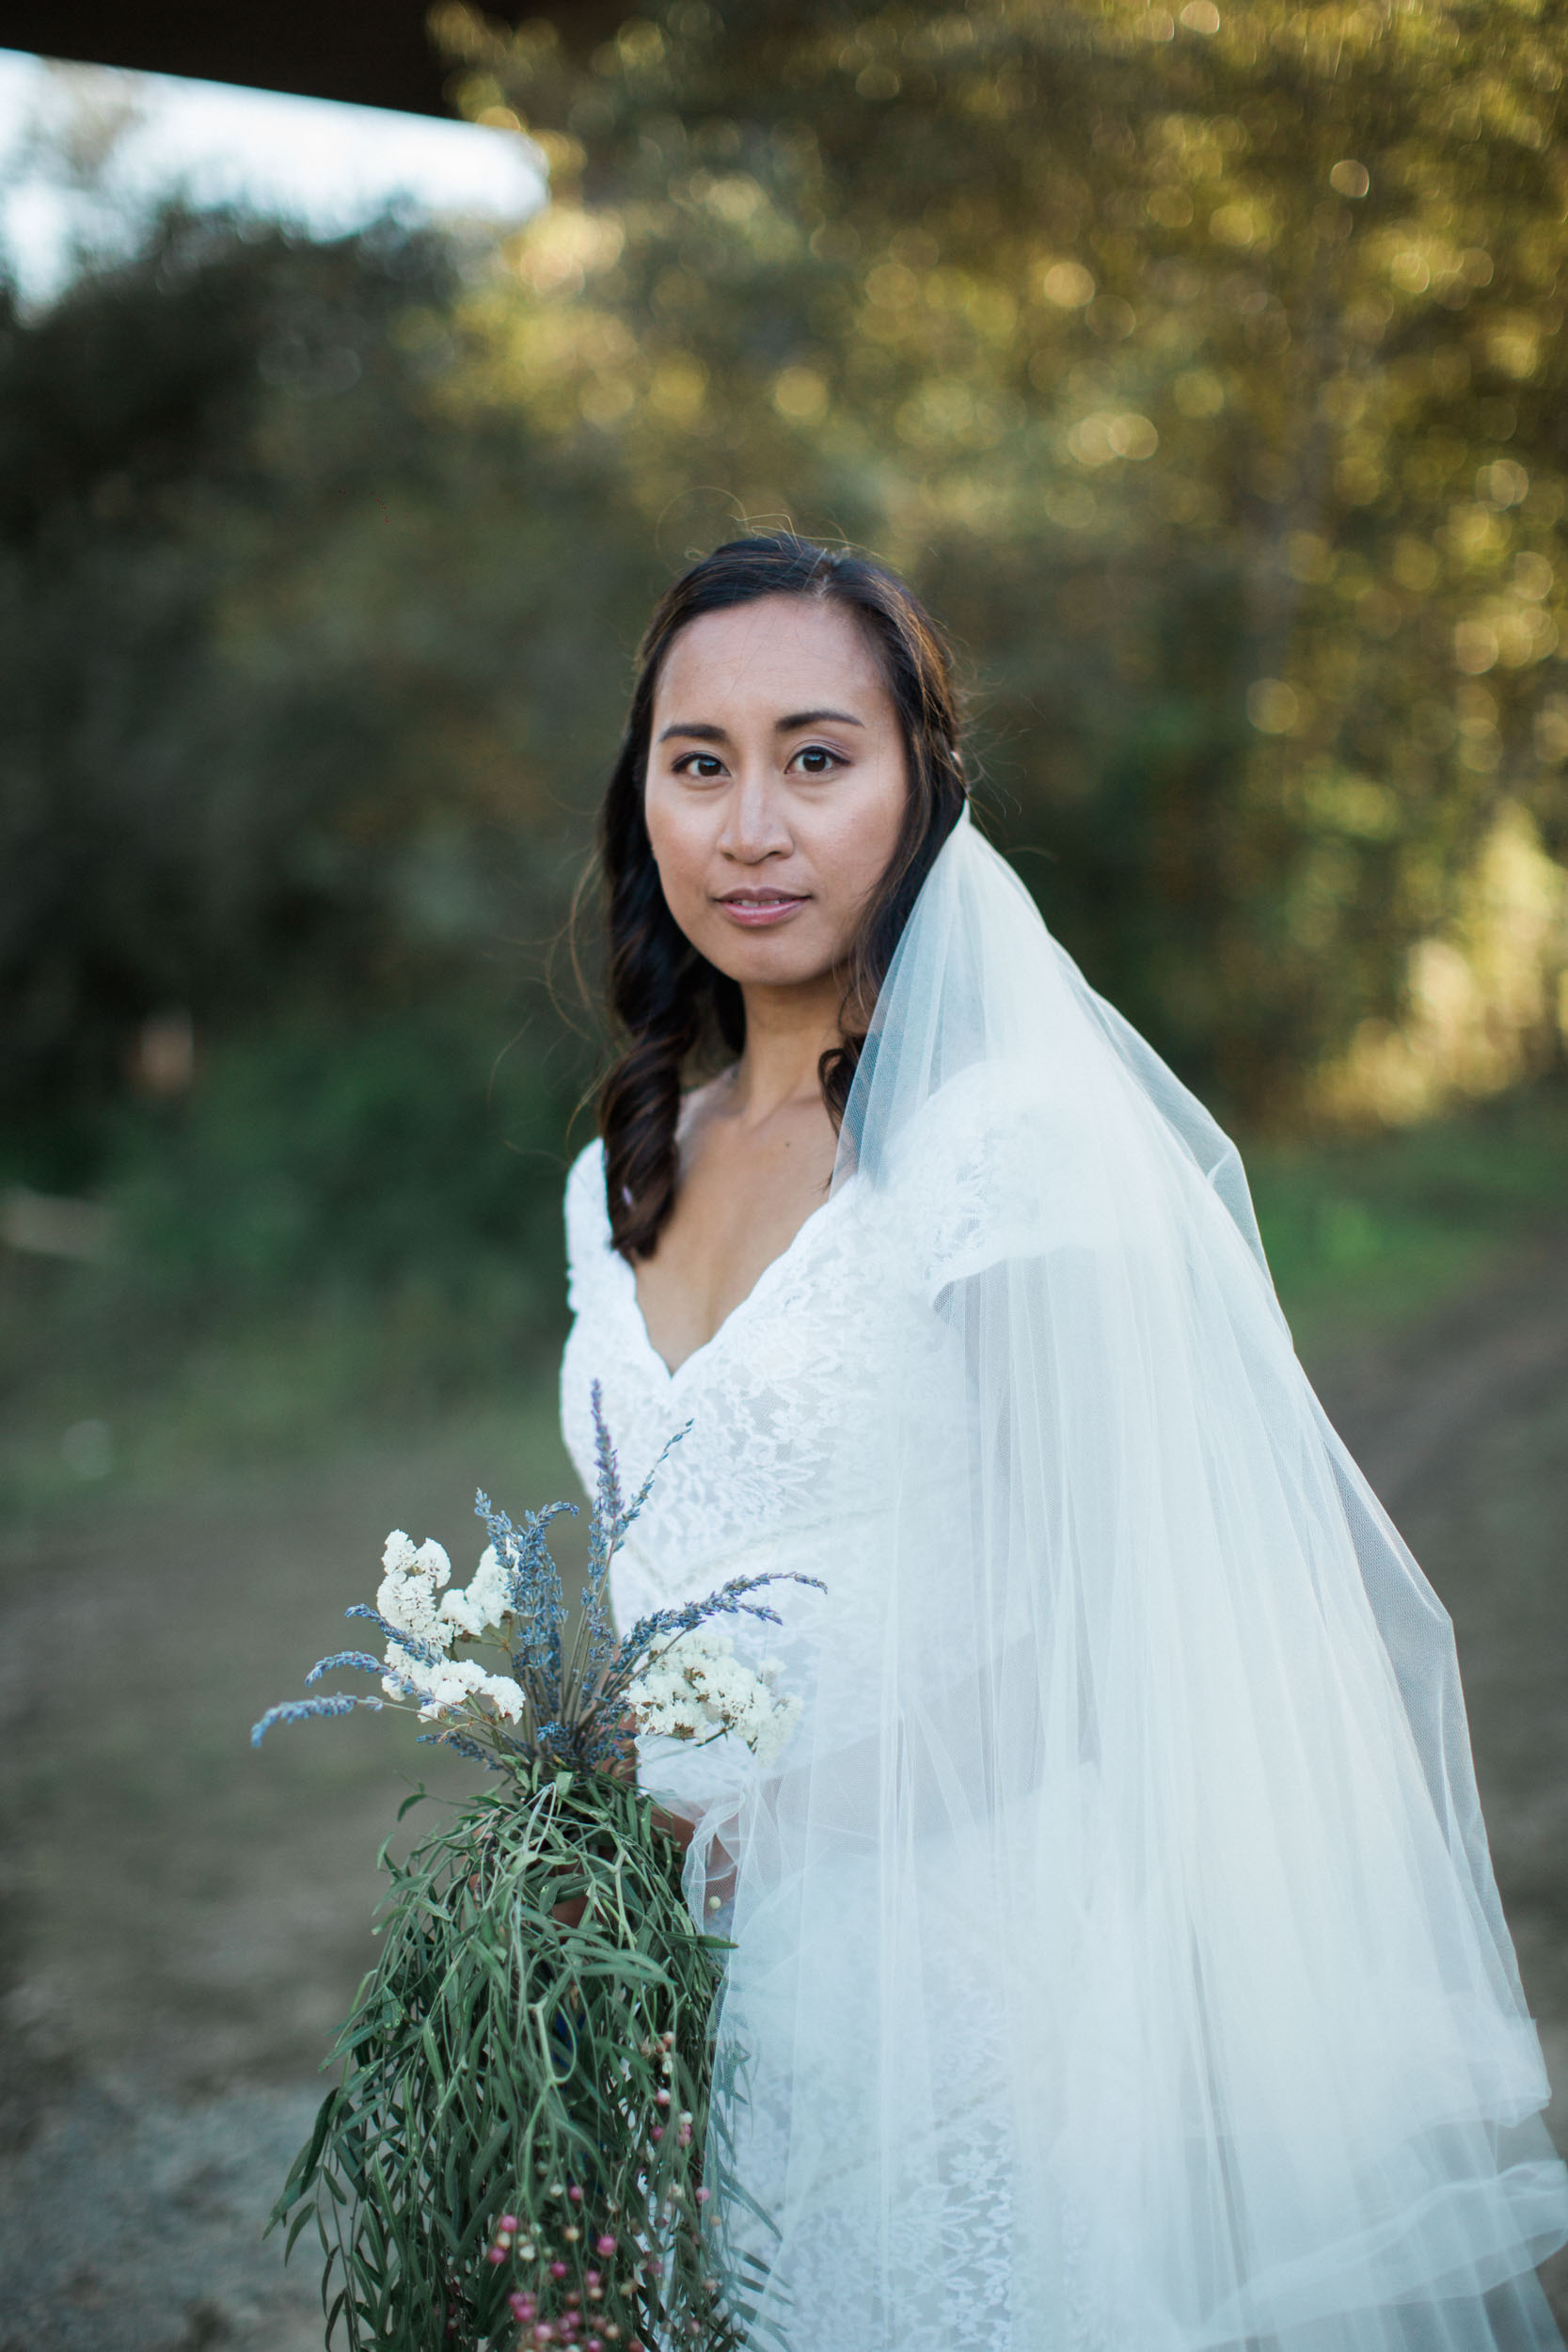 BKM-Photography-Russian-River-Wedding-Redwoods-Guerneville-California-Destination-Wedding-Photographer-0098.jpg